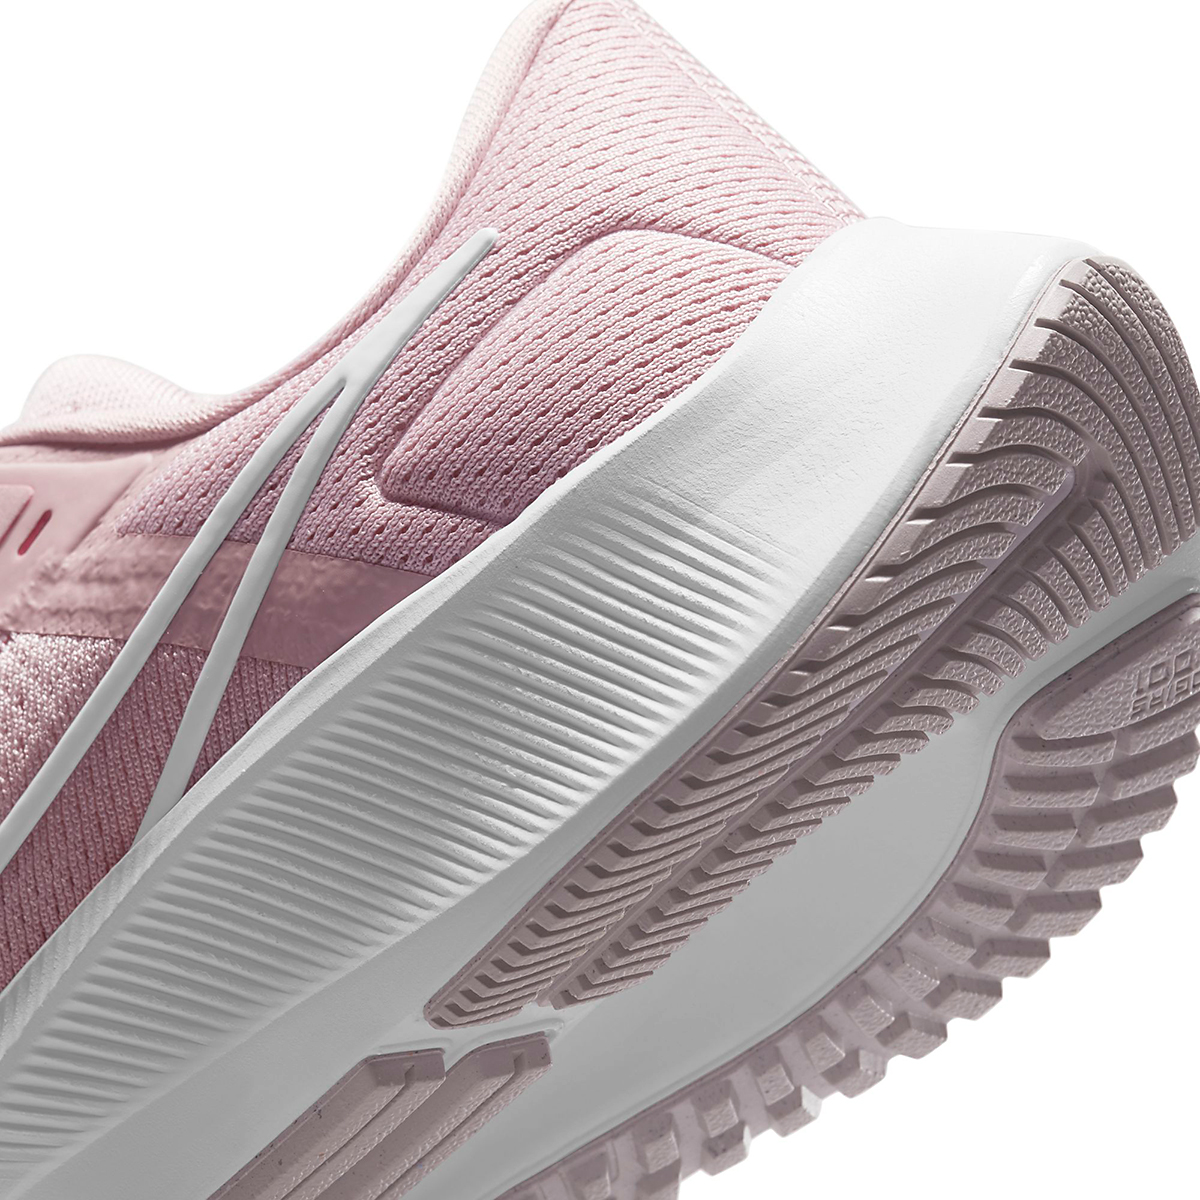 Women's Nike Air Zoom Pegasus 38 Running Shoe - Color: Champagne/White/Arctic Pink - Size: 5 - Width: Regular, Champagne/White/Arctic Pink, large, image 5